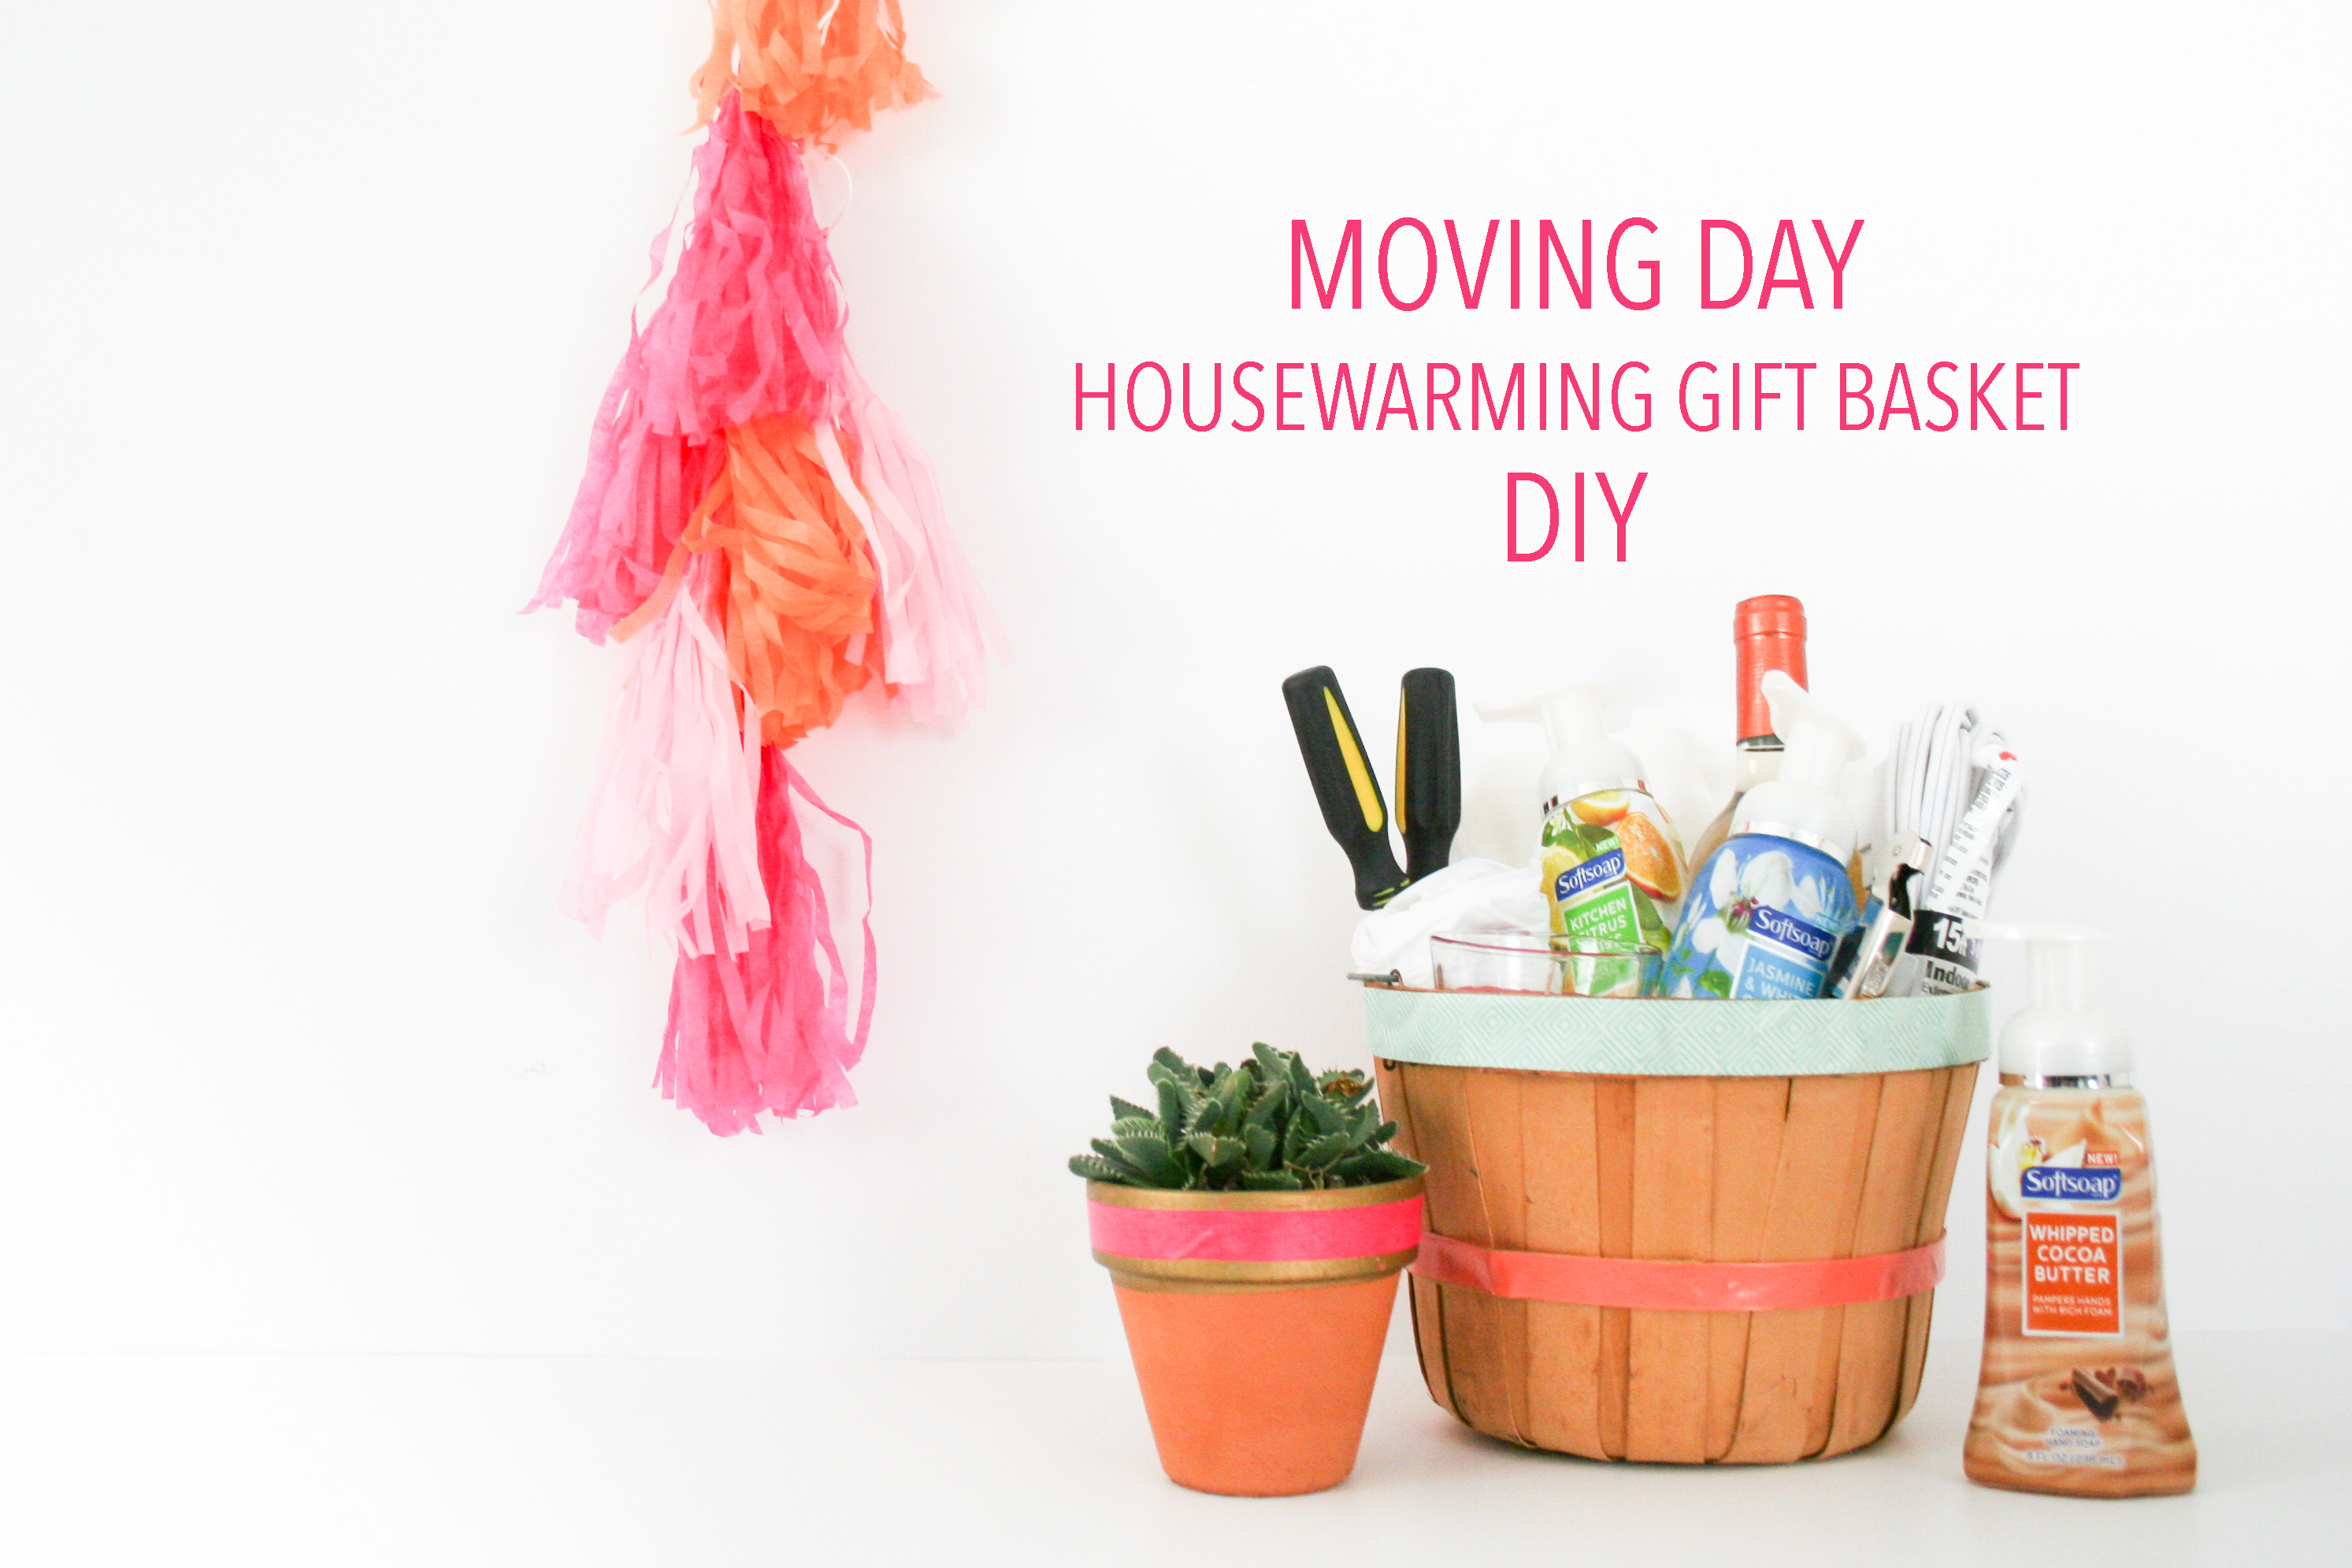 What Is A Nice Housewarming Gift Moving Day Housewarming Gift Basket Diy Salty Canary